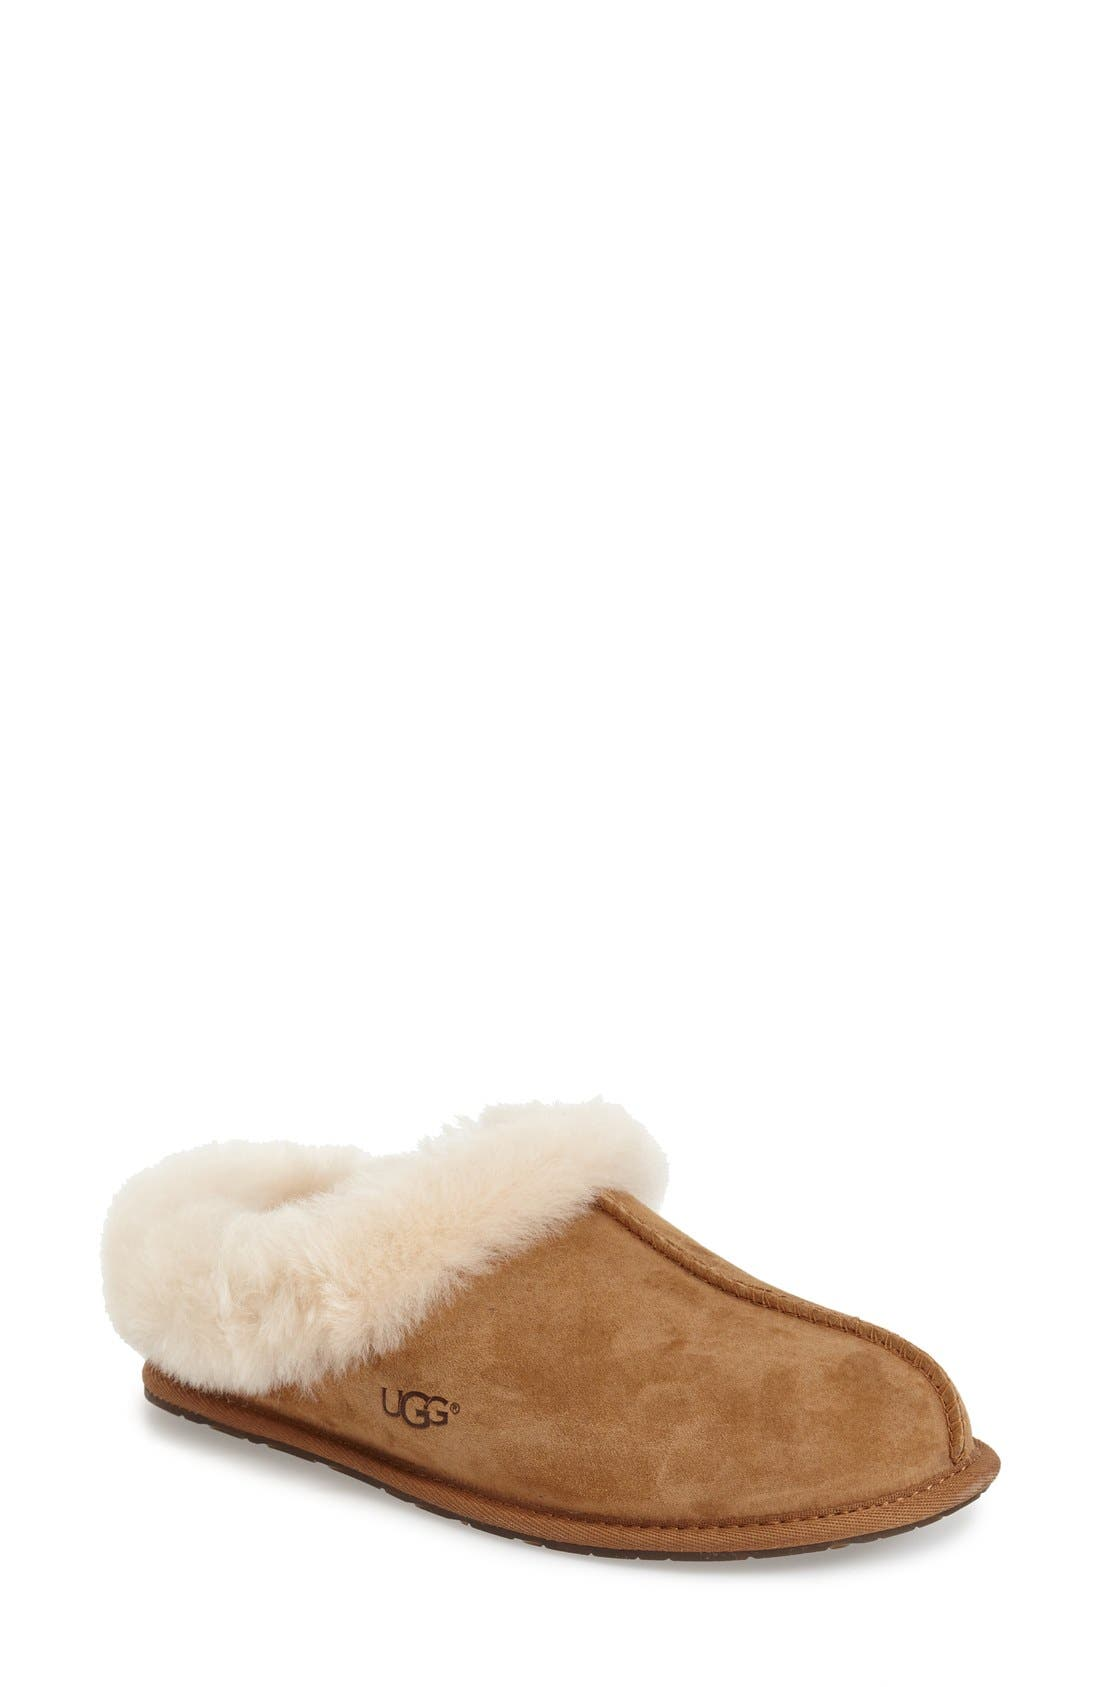 nordstrom womens slippers - 28 images